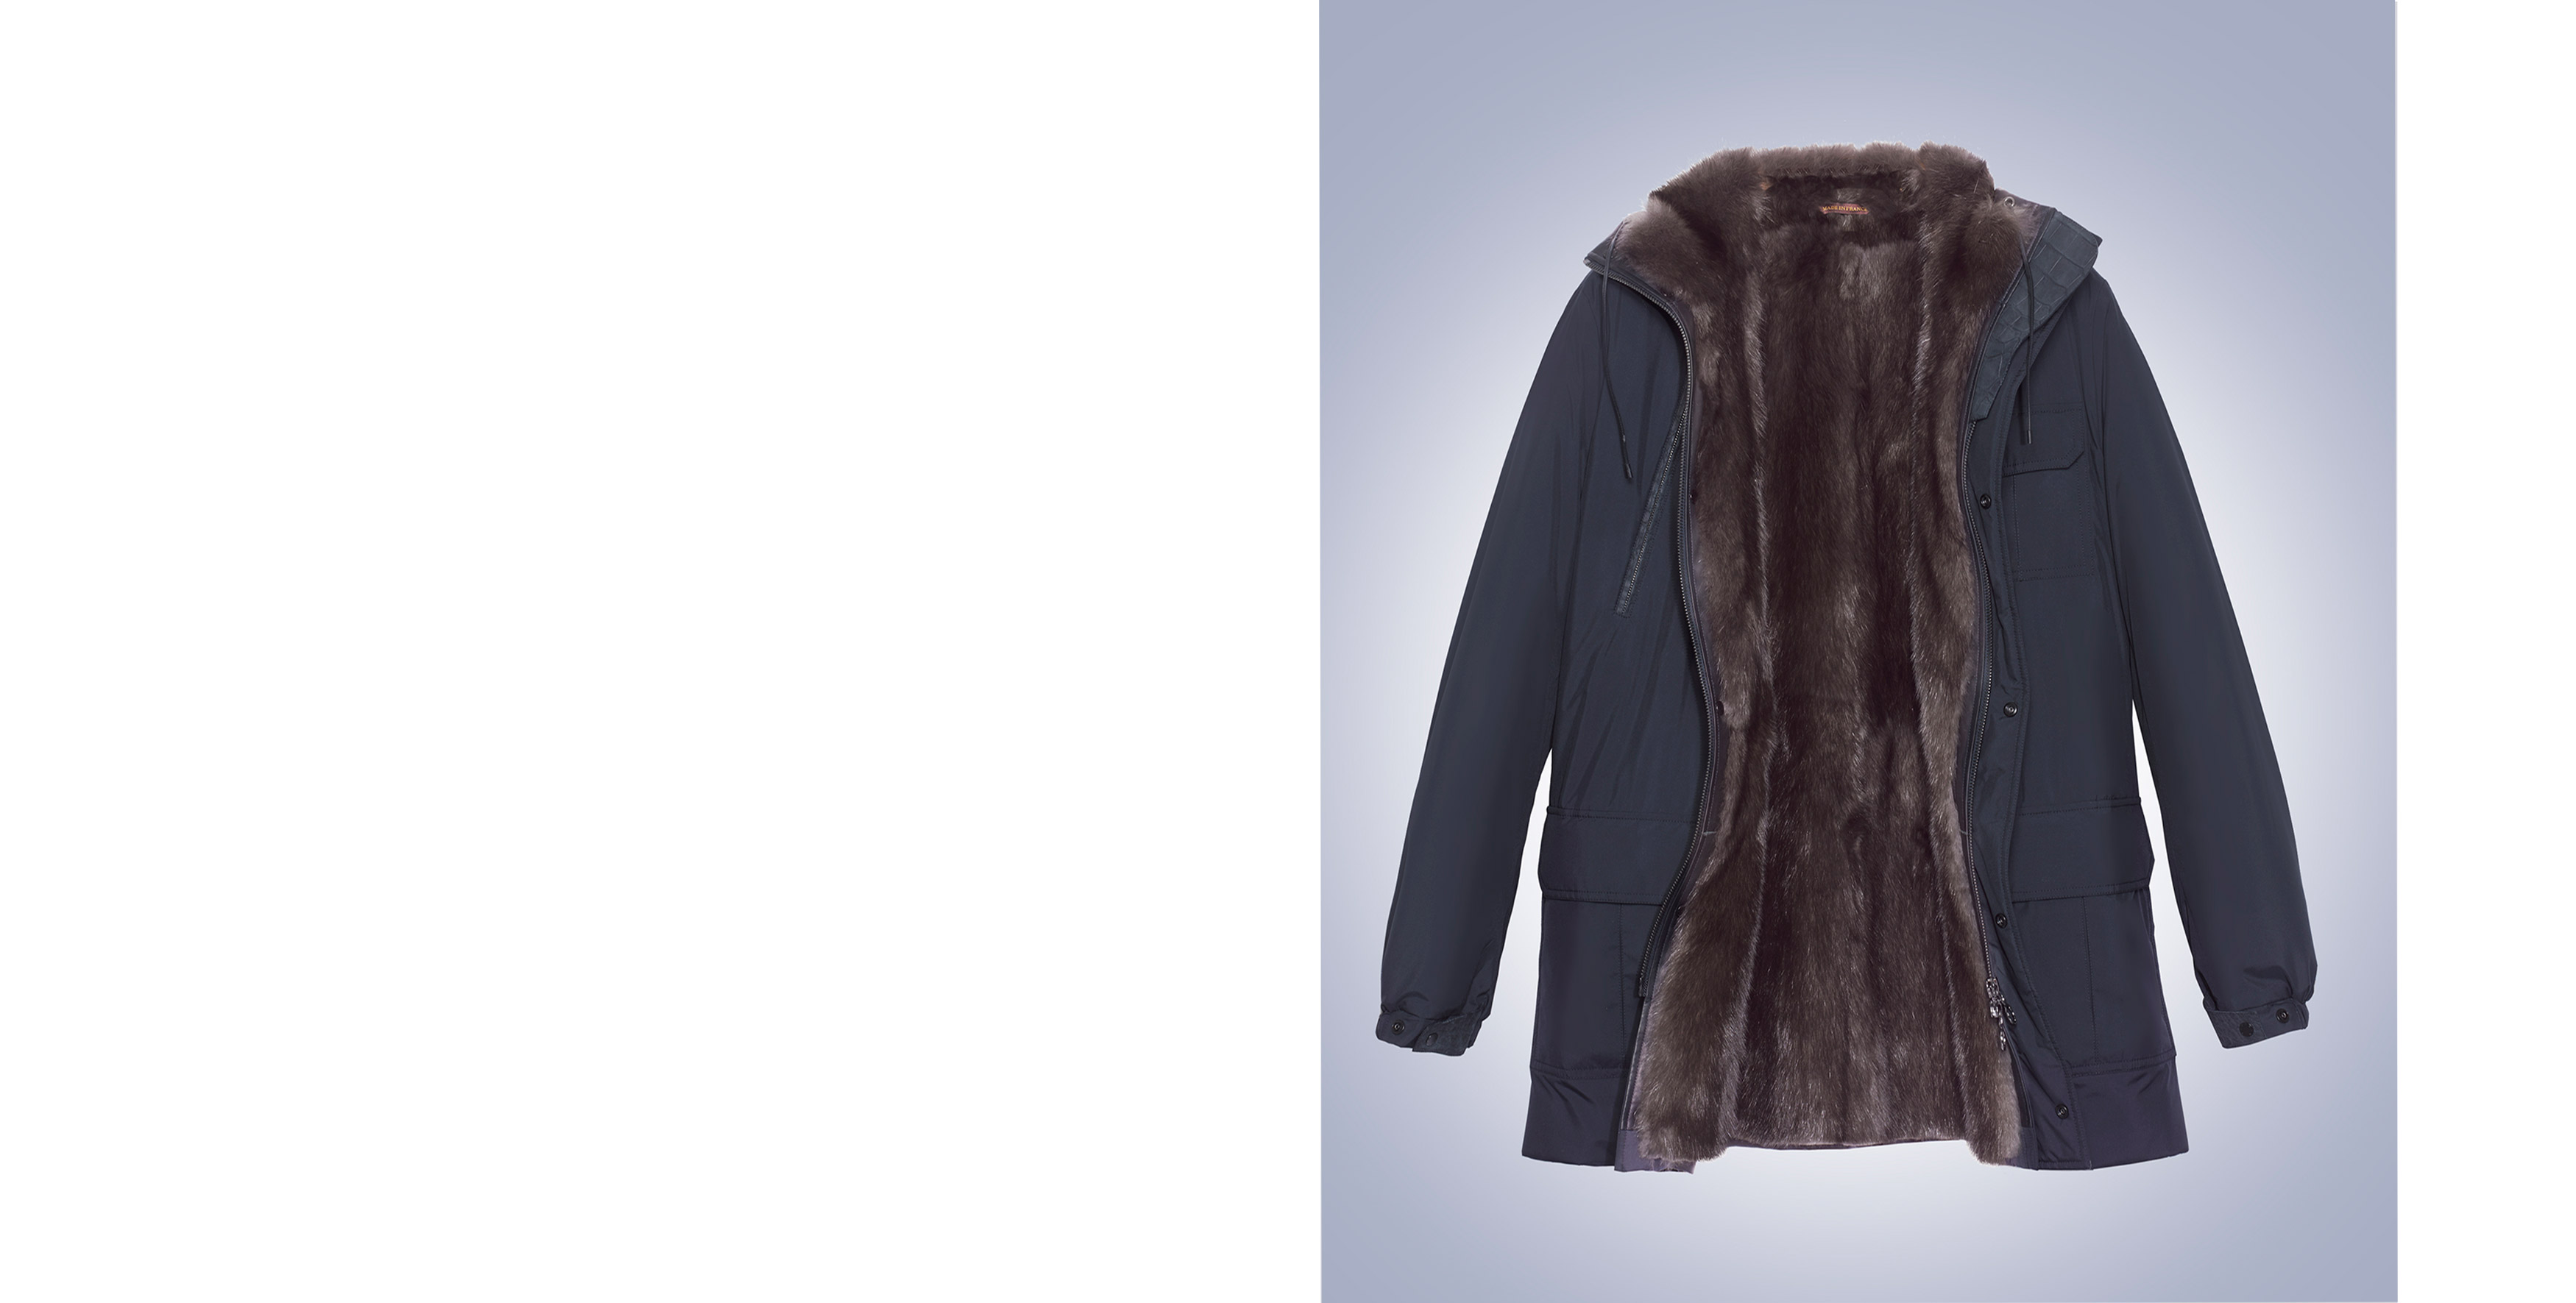 Everest parka in kimono nylon and sable fur lining